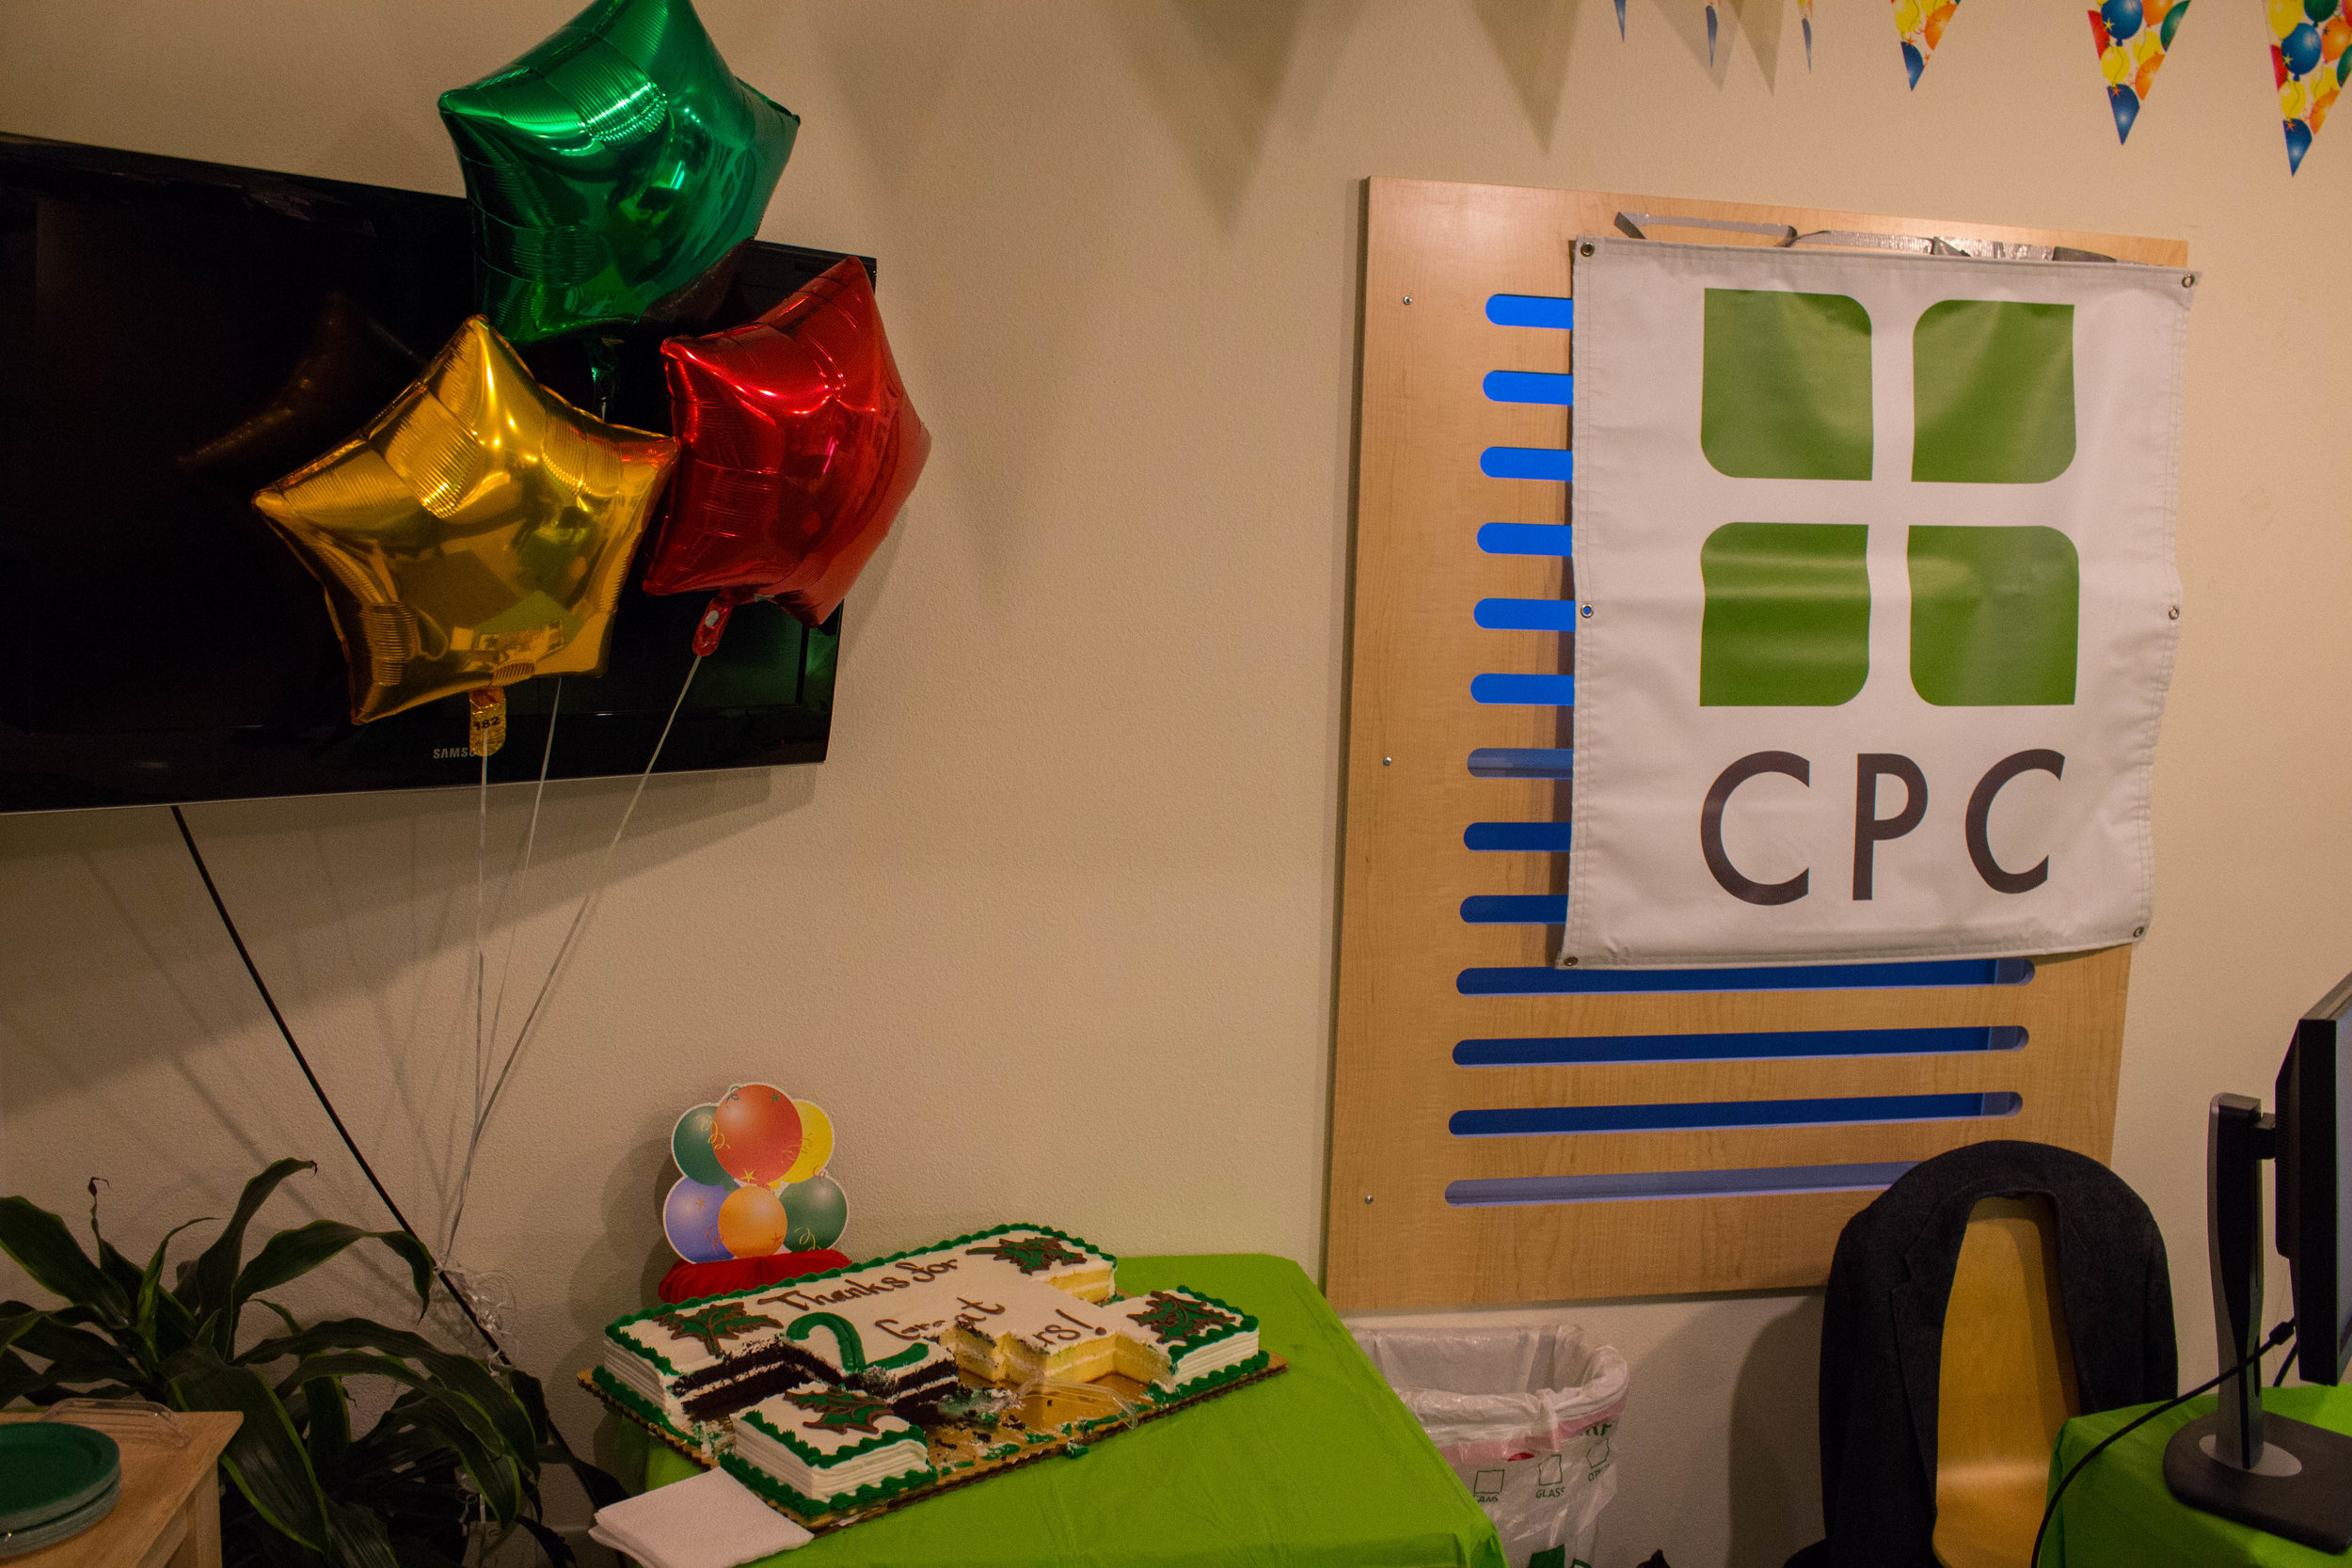 Balloons in front of TV, Cake, and CPC Banner